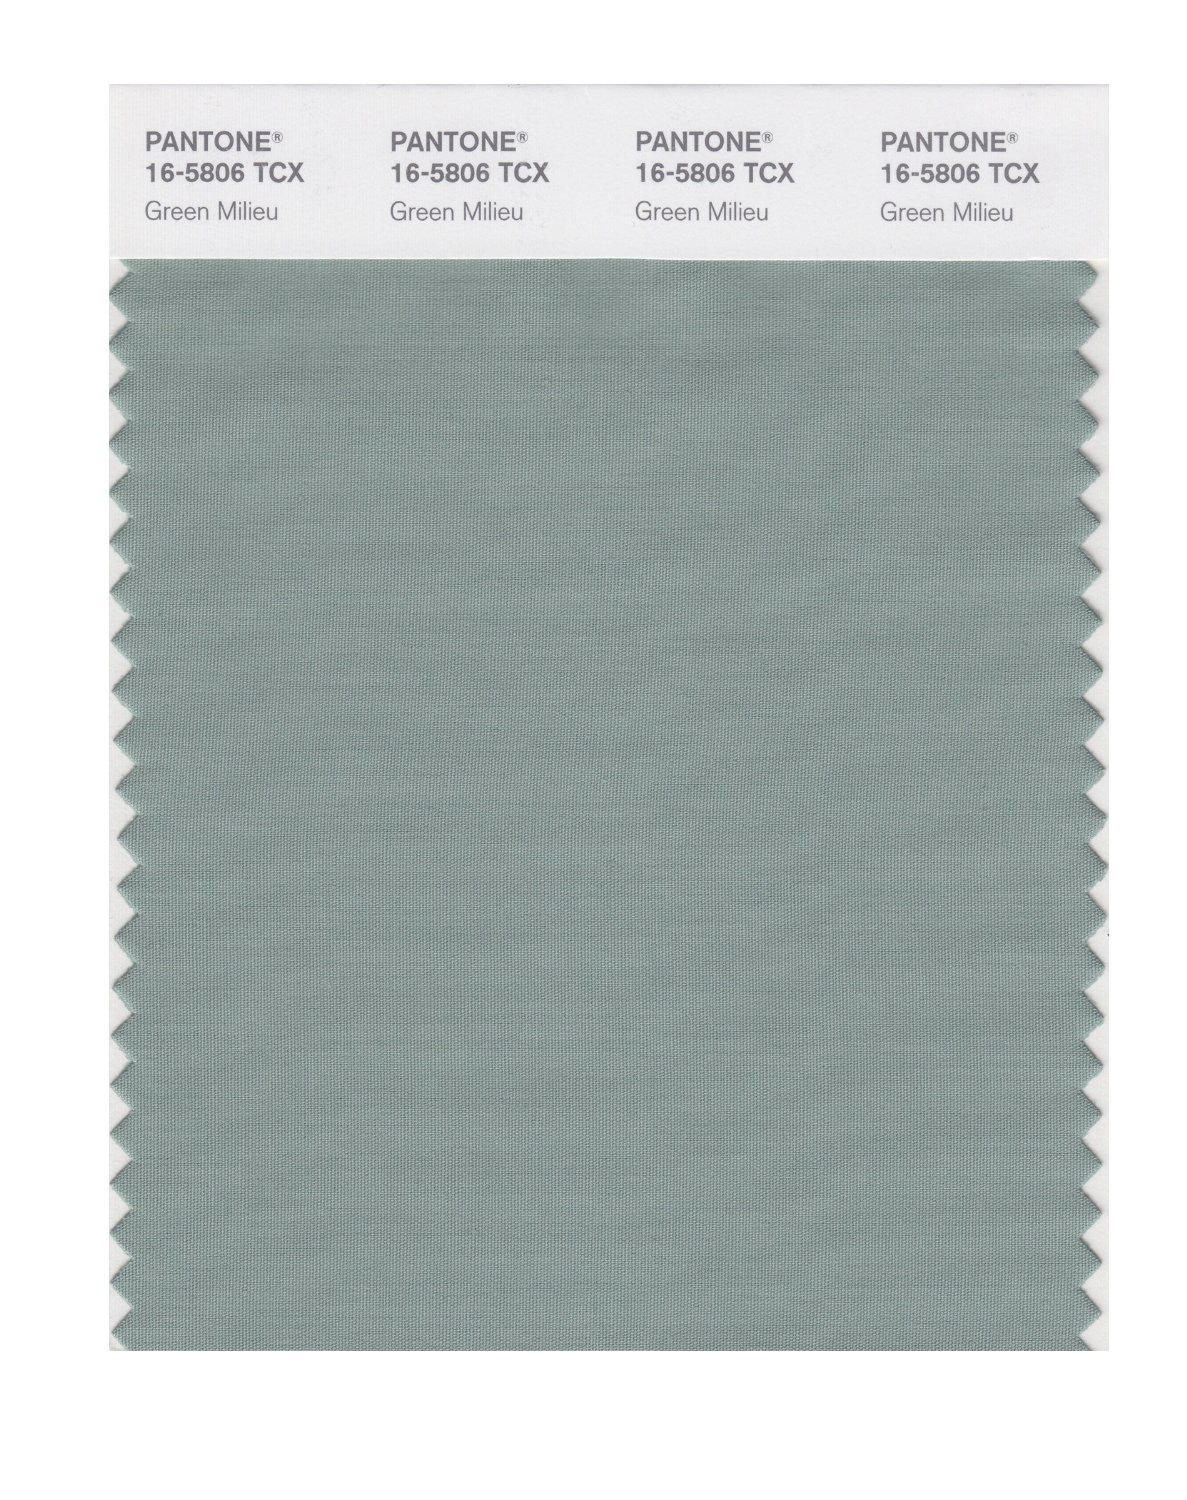 Pantone Smart Swatch 16-5806 Green Milieu